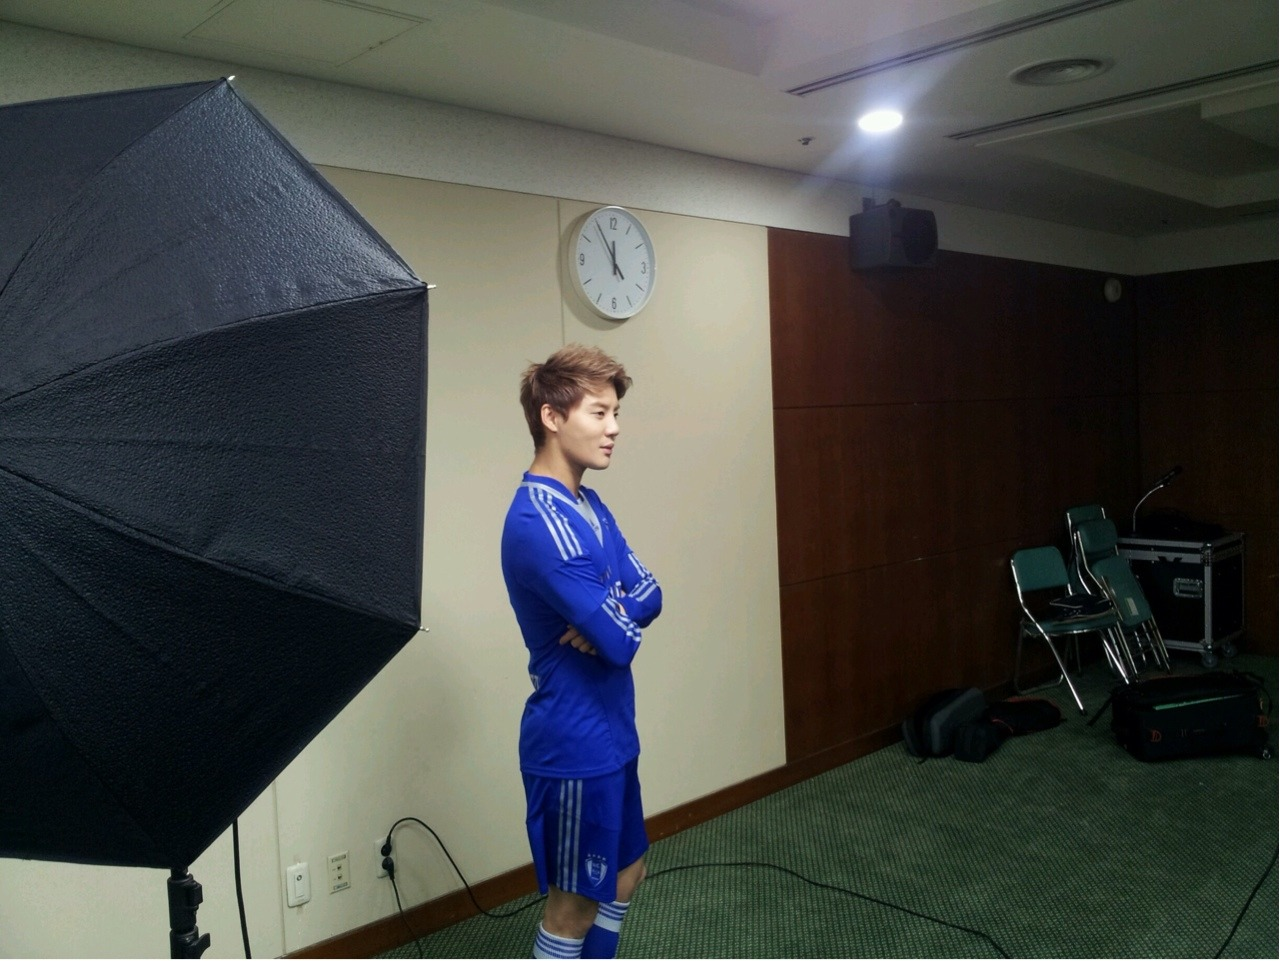 JYJ Naver LINE Update [3.17.13 KST] JYJ(KR):  I'm shooting my profile picture for 2013! Excited and nervous^^  JYJ(EN):  shooting 2013 profile! excited and nervous !!  Translated by: @XIAH_PressSource: JYJ Naver LINE + JYJ(EN) Naver LINE